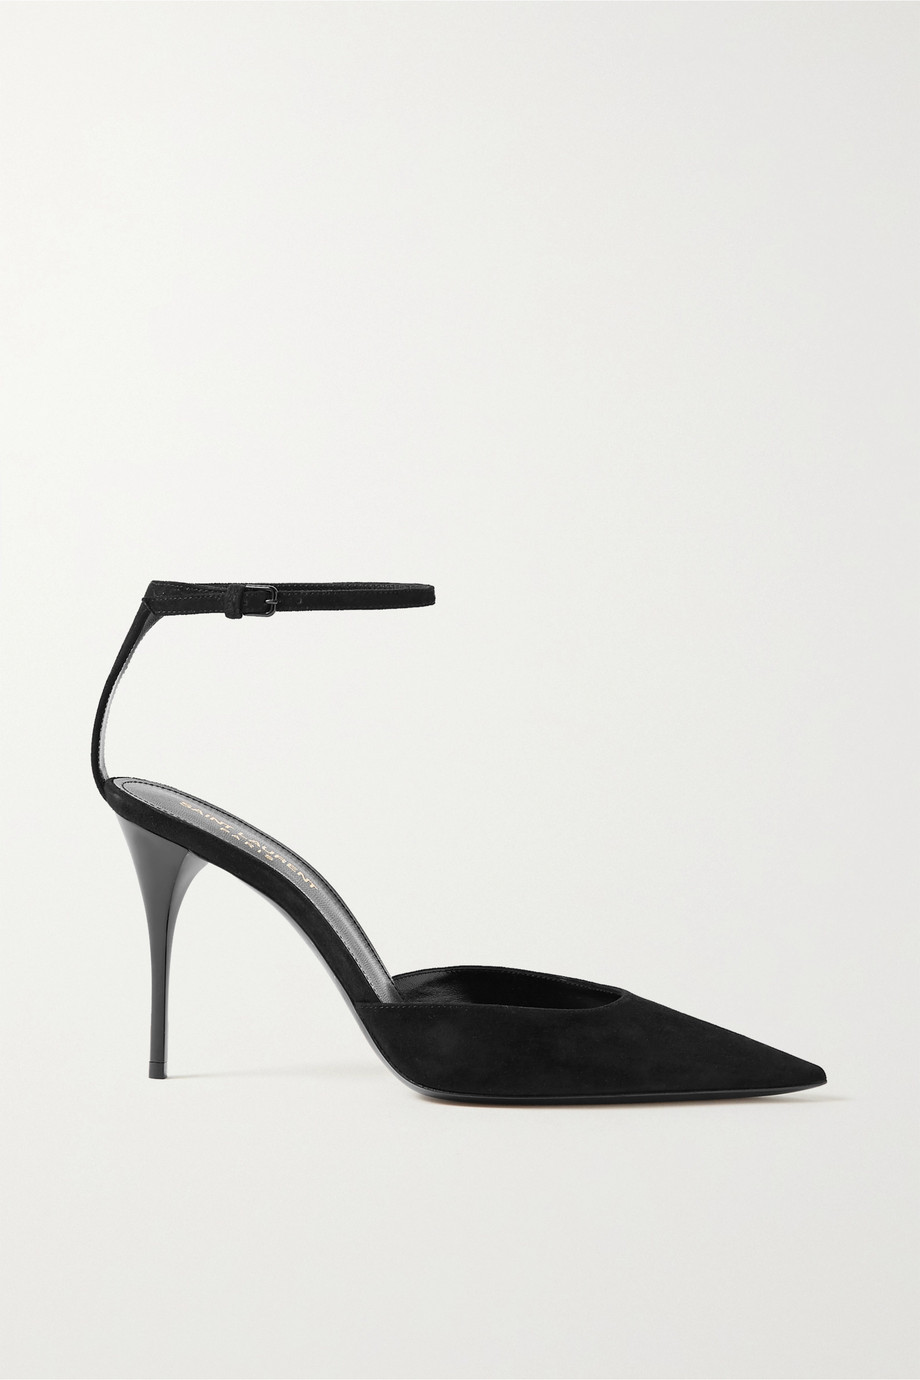 SAINT LAURENT Lexi suede pumps